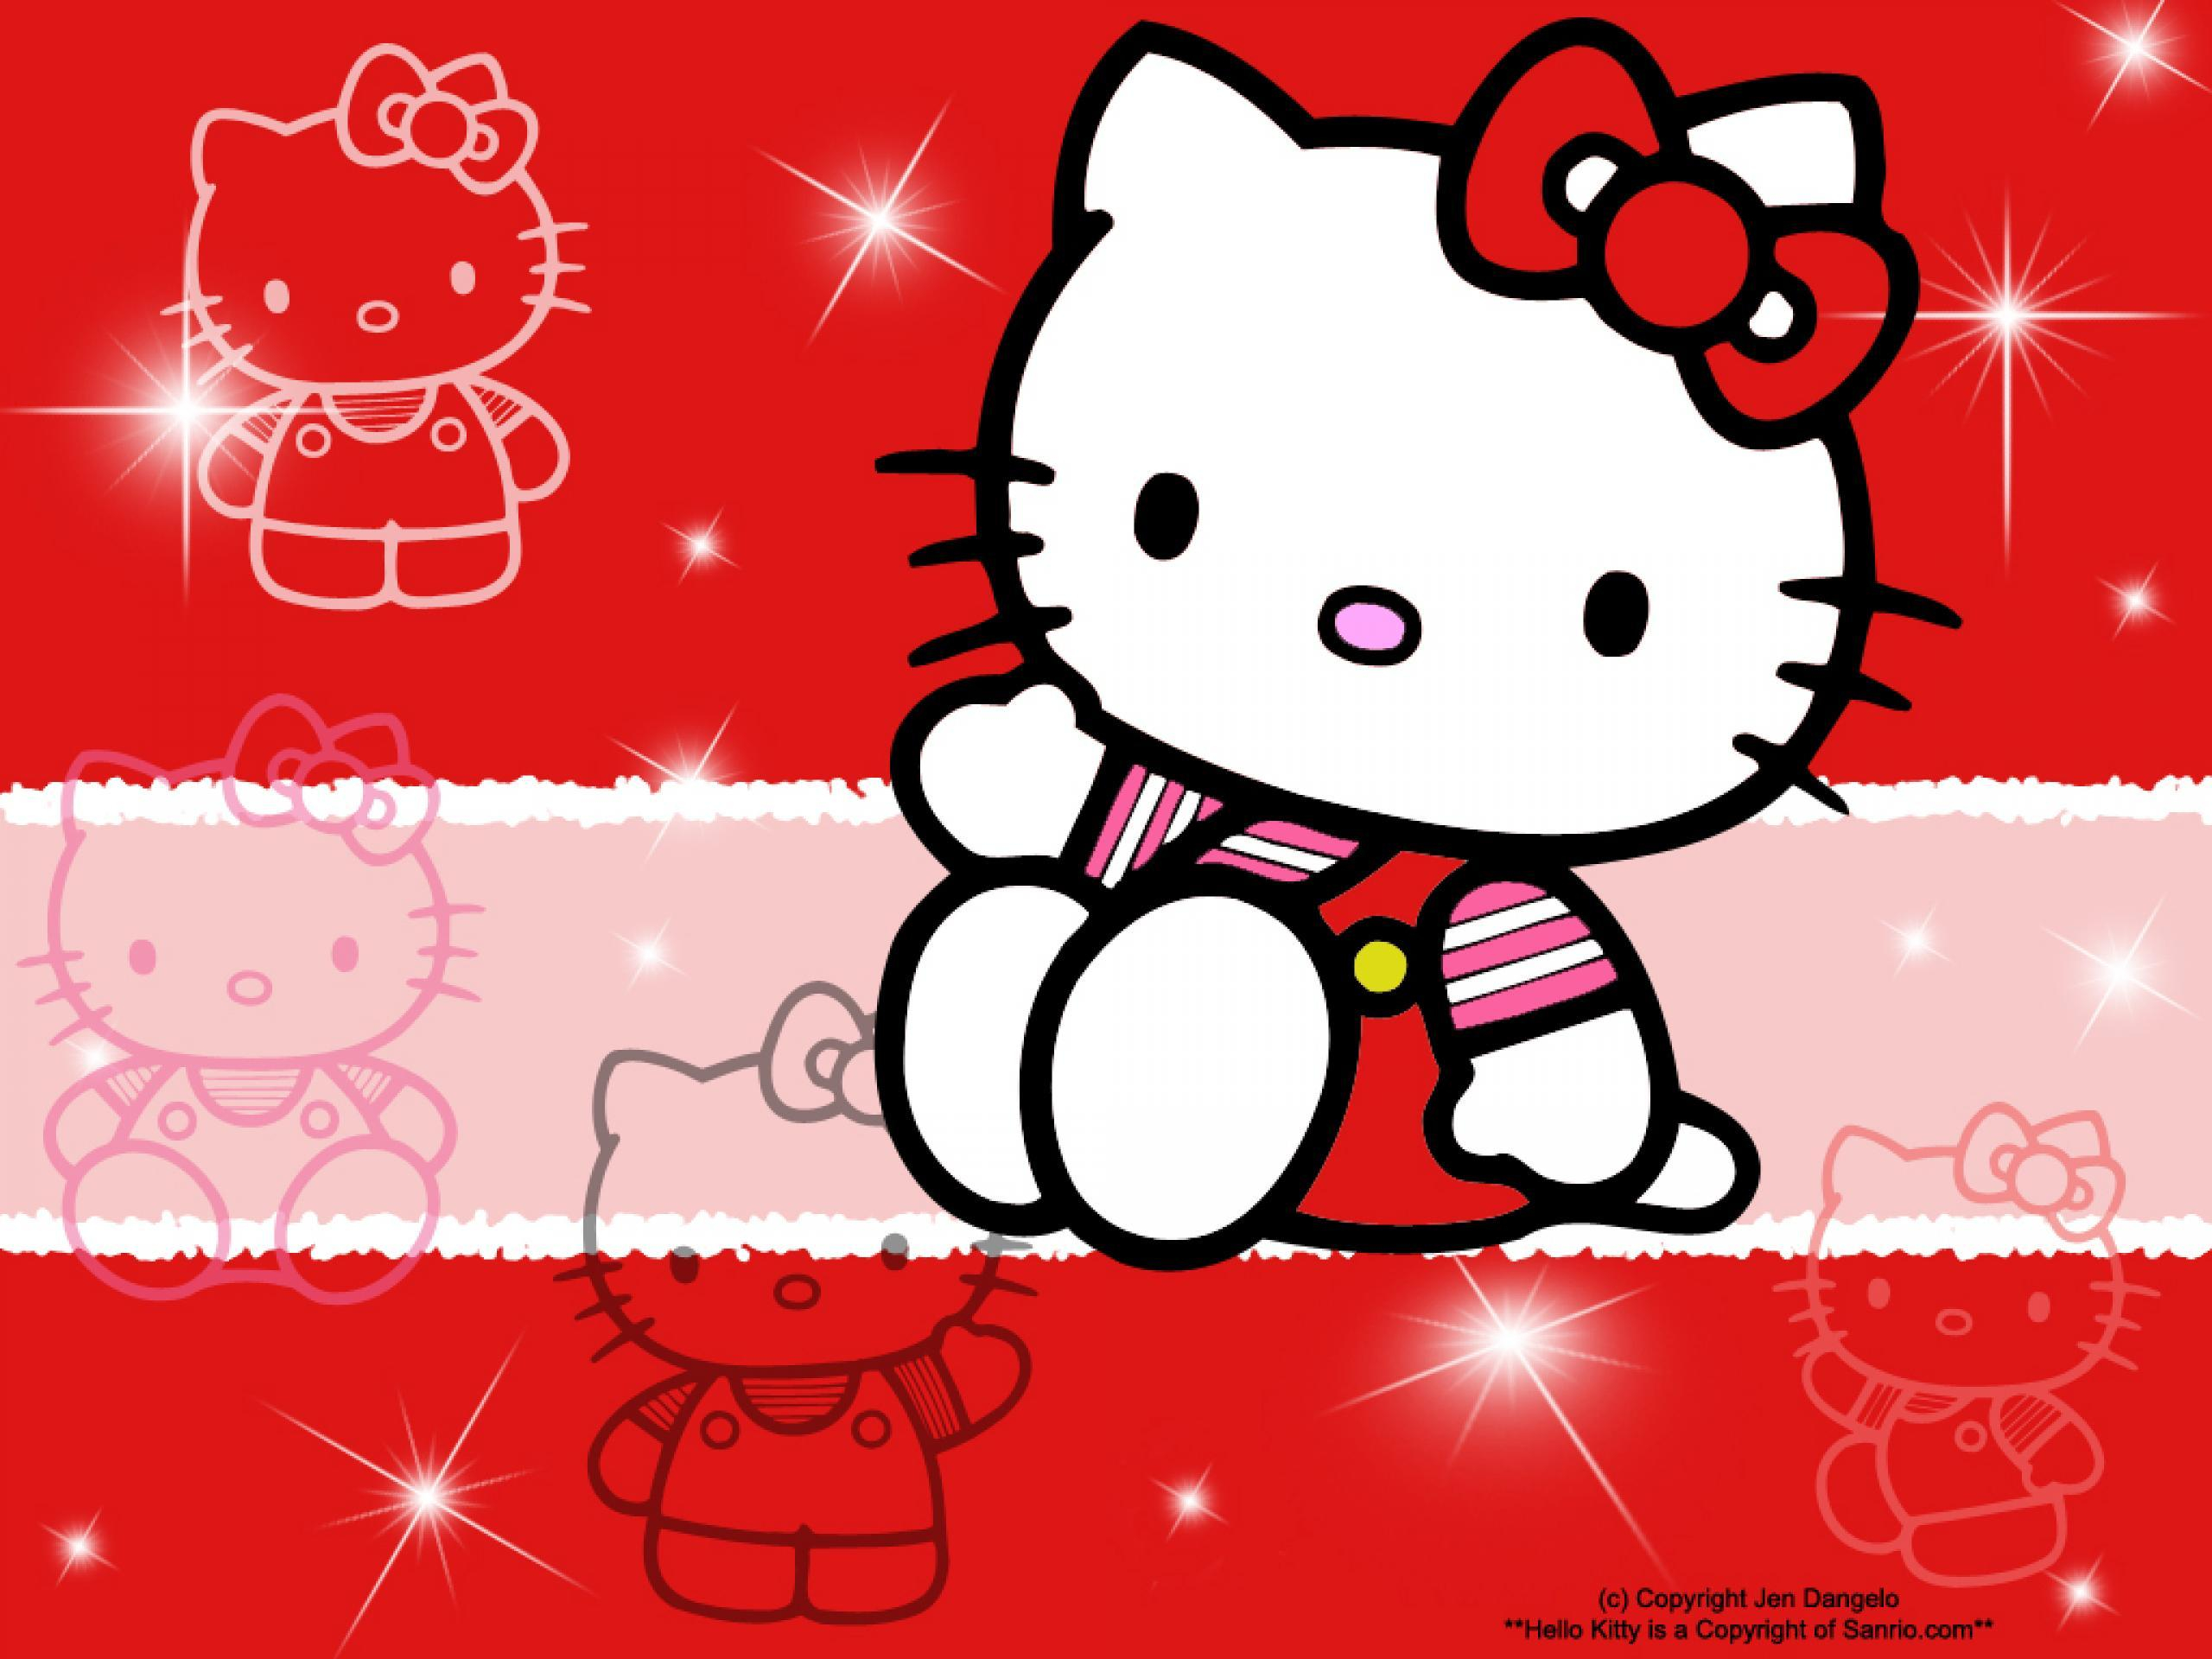 Amazing Wallpaper Hello Kitty Red - ENEF5wK  Pic_7683100.jpg